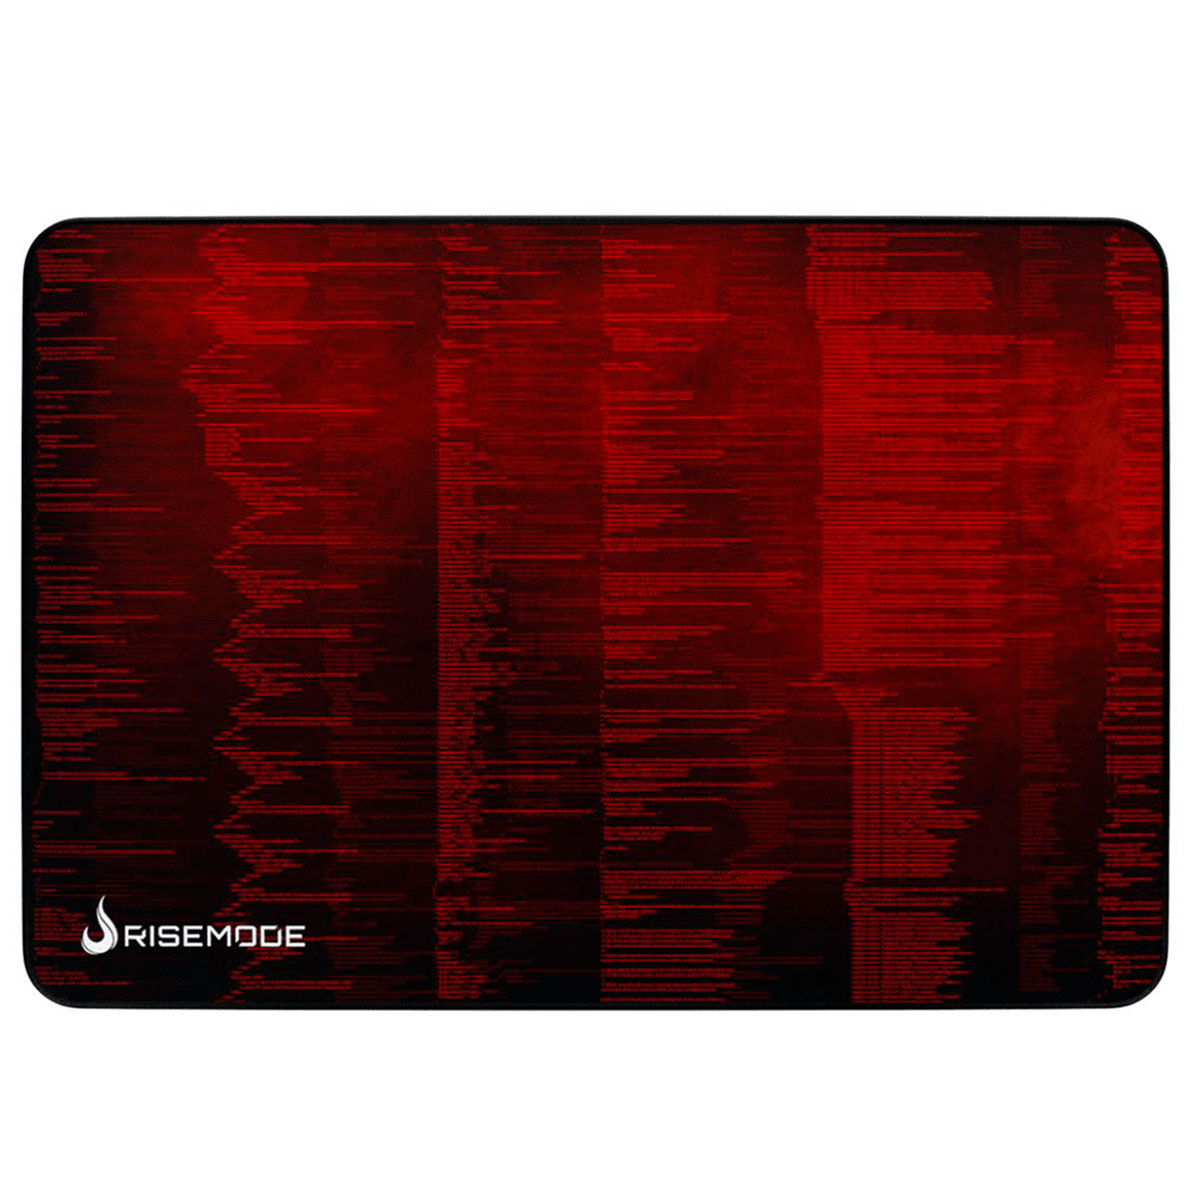 Mouse Pad Gamer Rise Mode Hacker Red - Médio Bc - RG-MP-04- HCKR